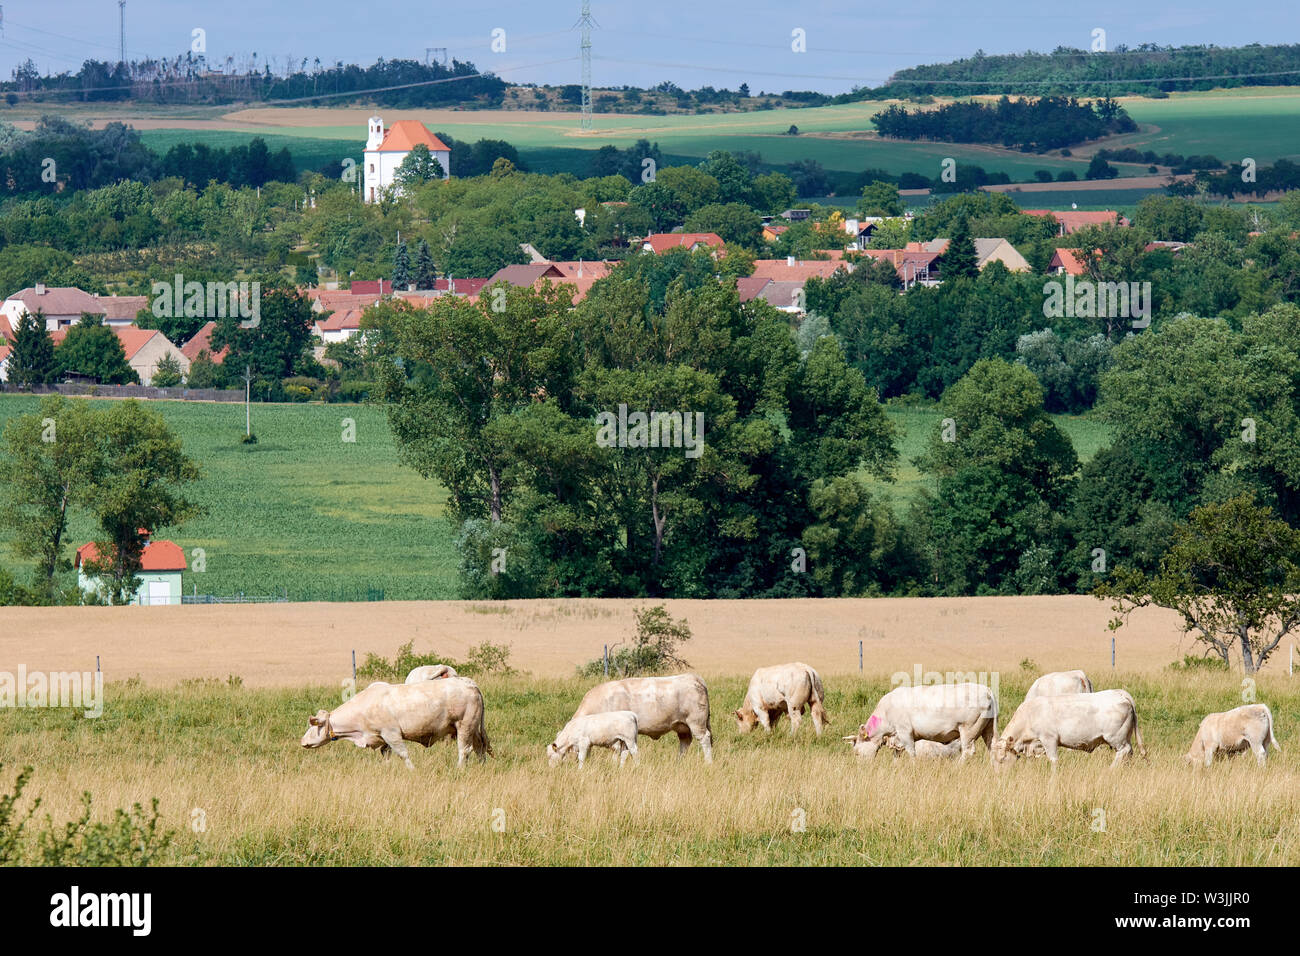 Herd of cows grazing in countryside with hills, trees and village with houses under spring sky with clouds - Stock Image